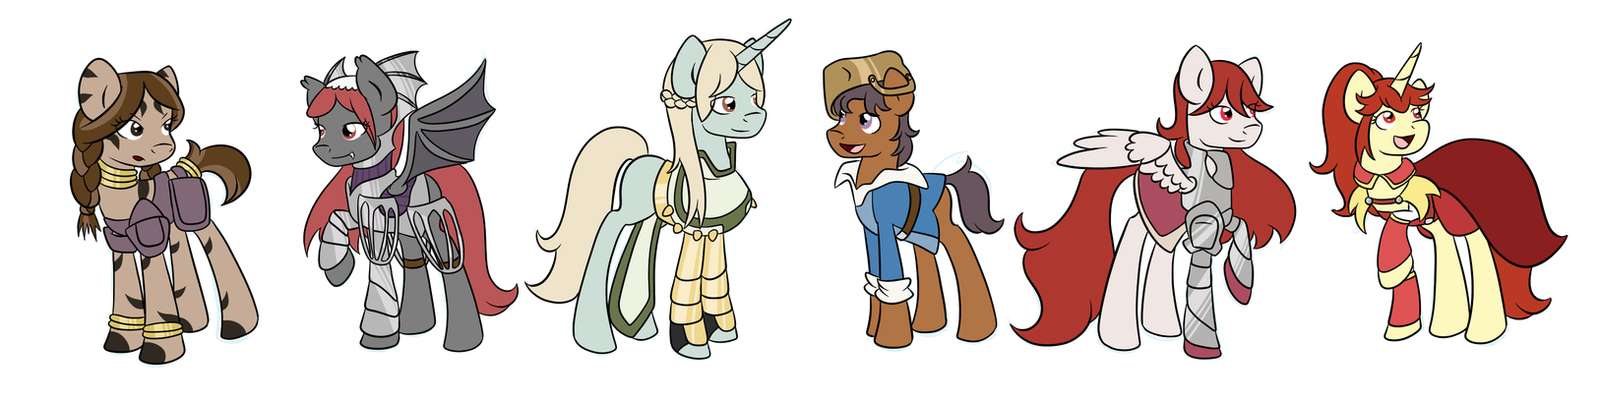 FE:A Ponies- Others by Fairiegirl101